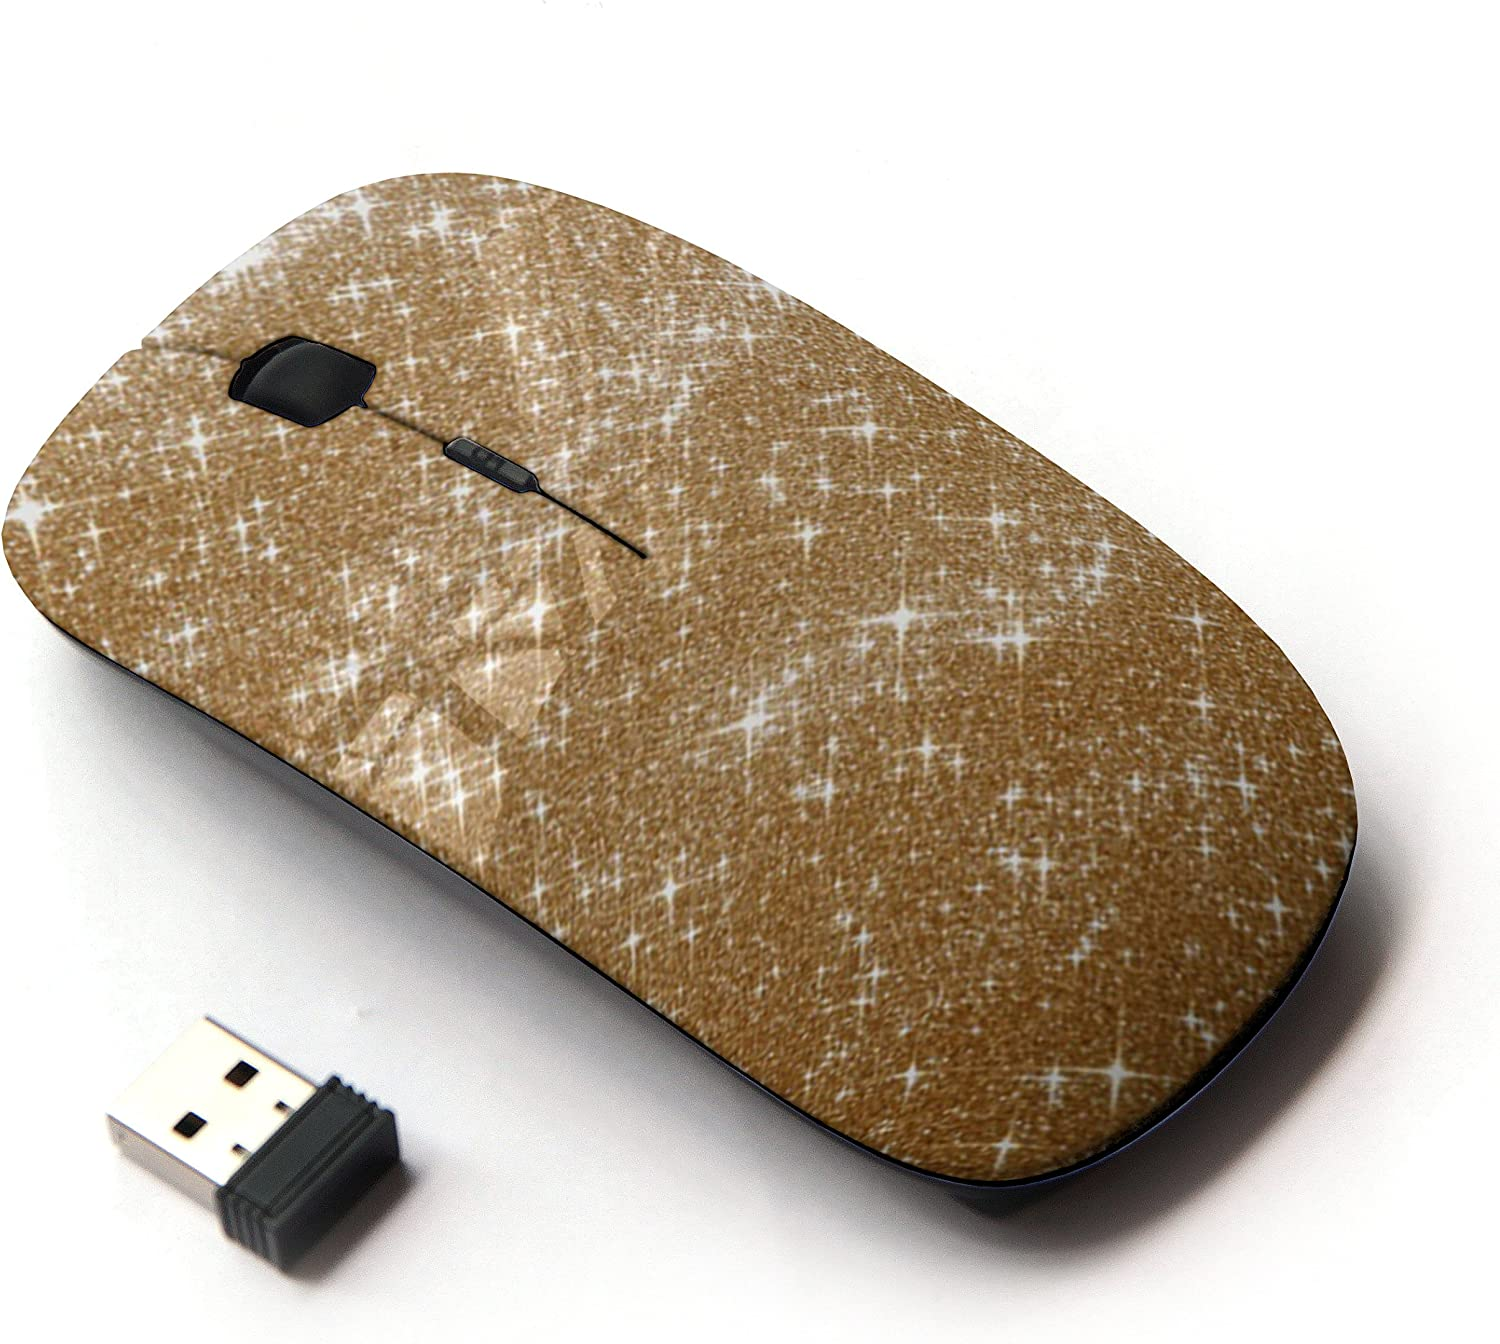 KawaiiMouse [ Optical 2.4G Wireless Mouse ] Gold Sparkle Bright Bling Fashion Design